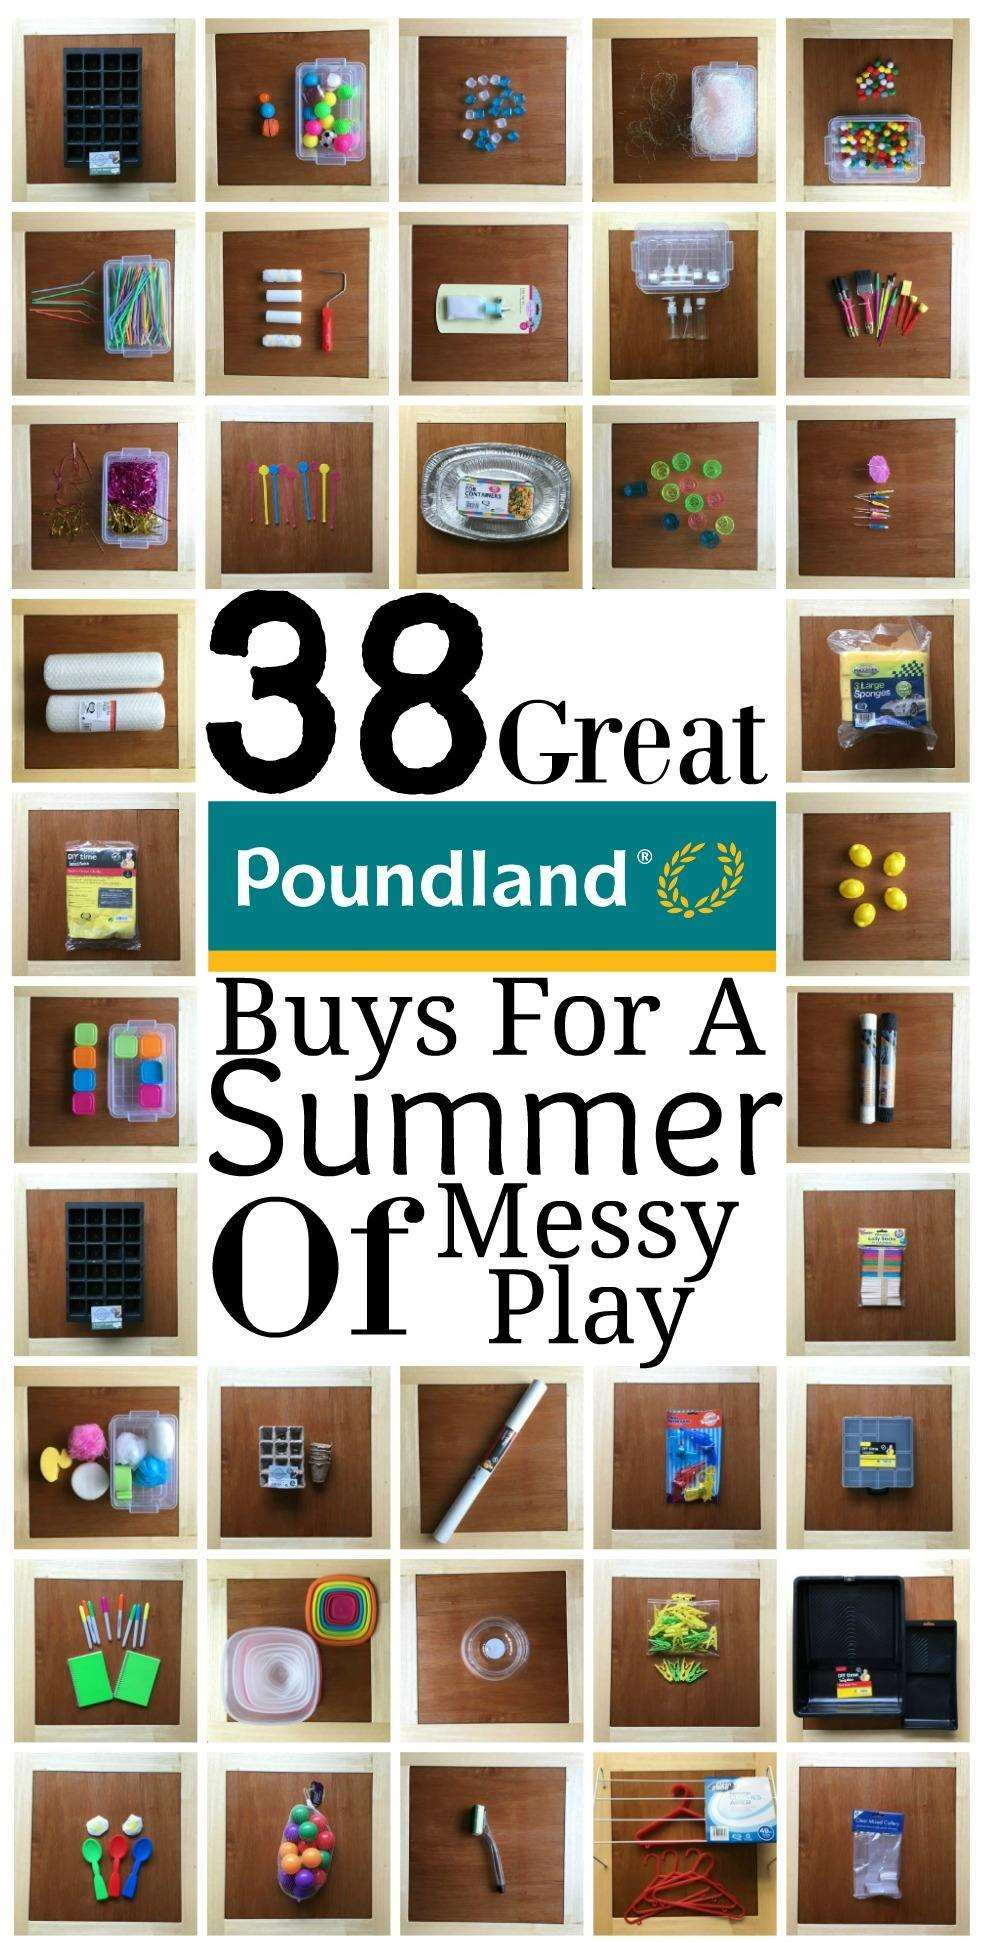 38 Great Poundland Buys for a Summer of Messy Play, Poundland Messy Play%, new-dad%